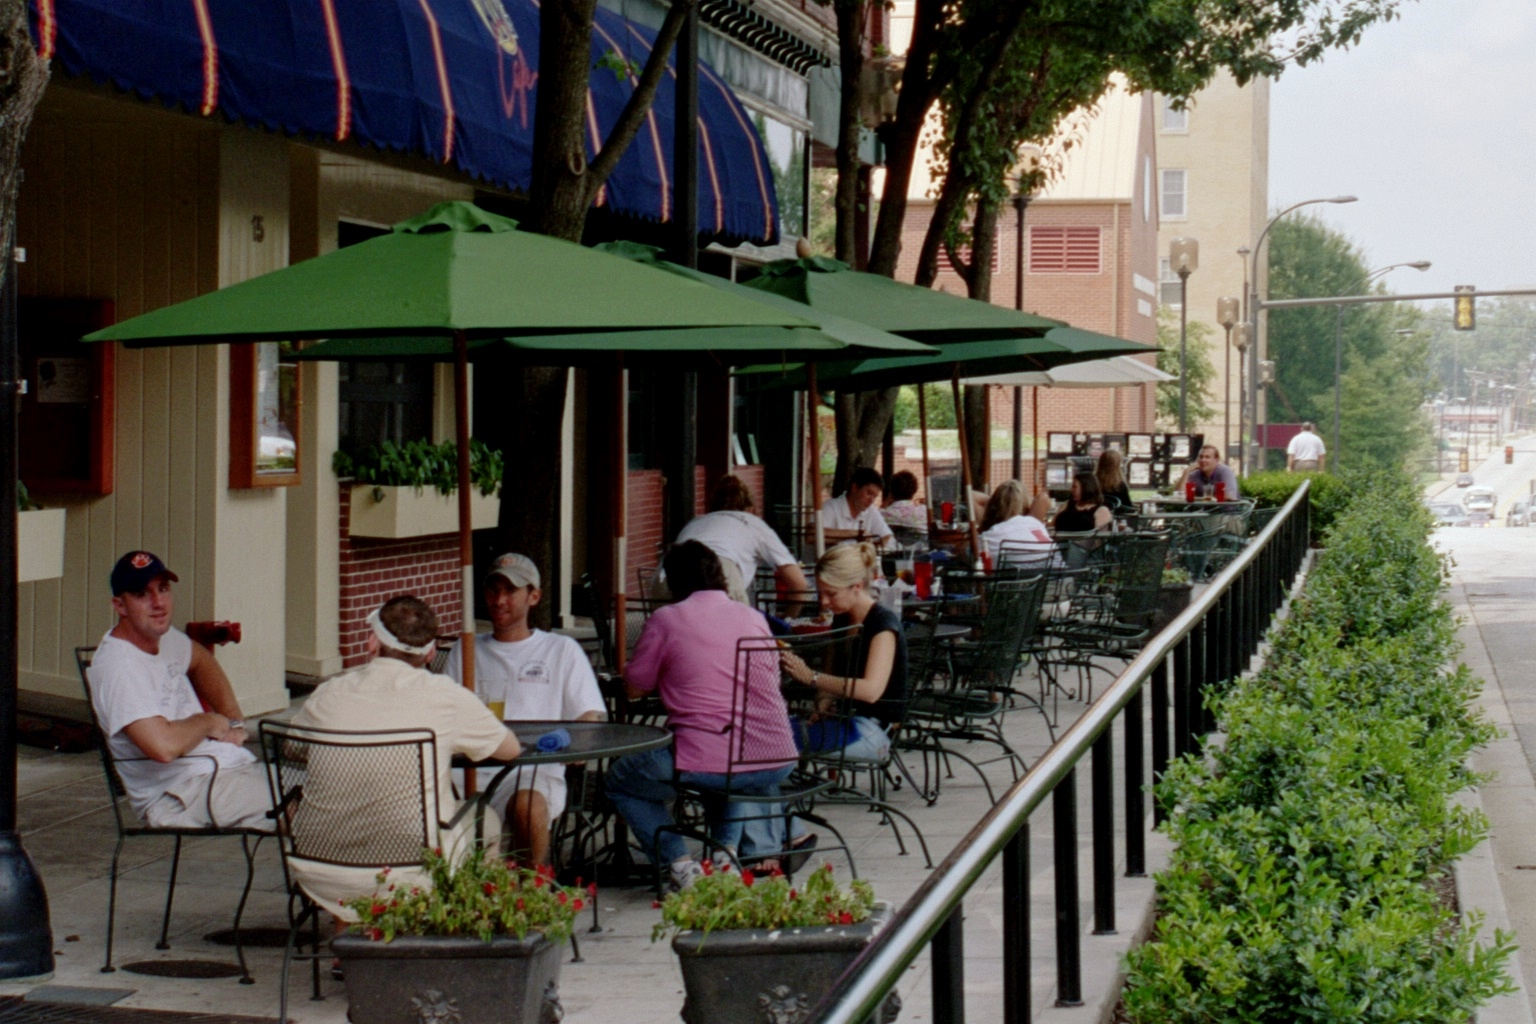 Relocate Loading Zone to Provide New Sidewalk Dining